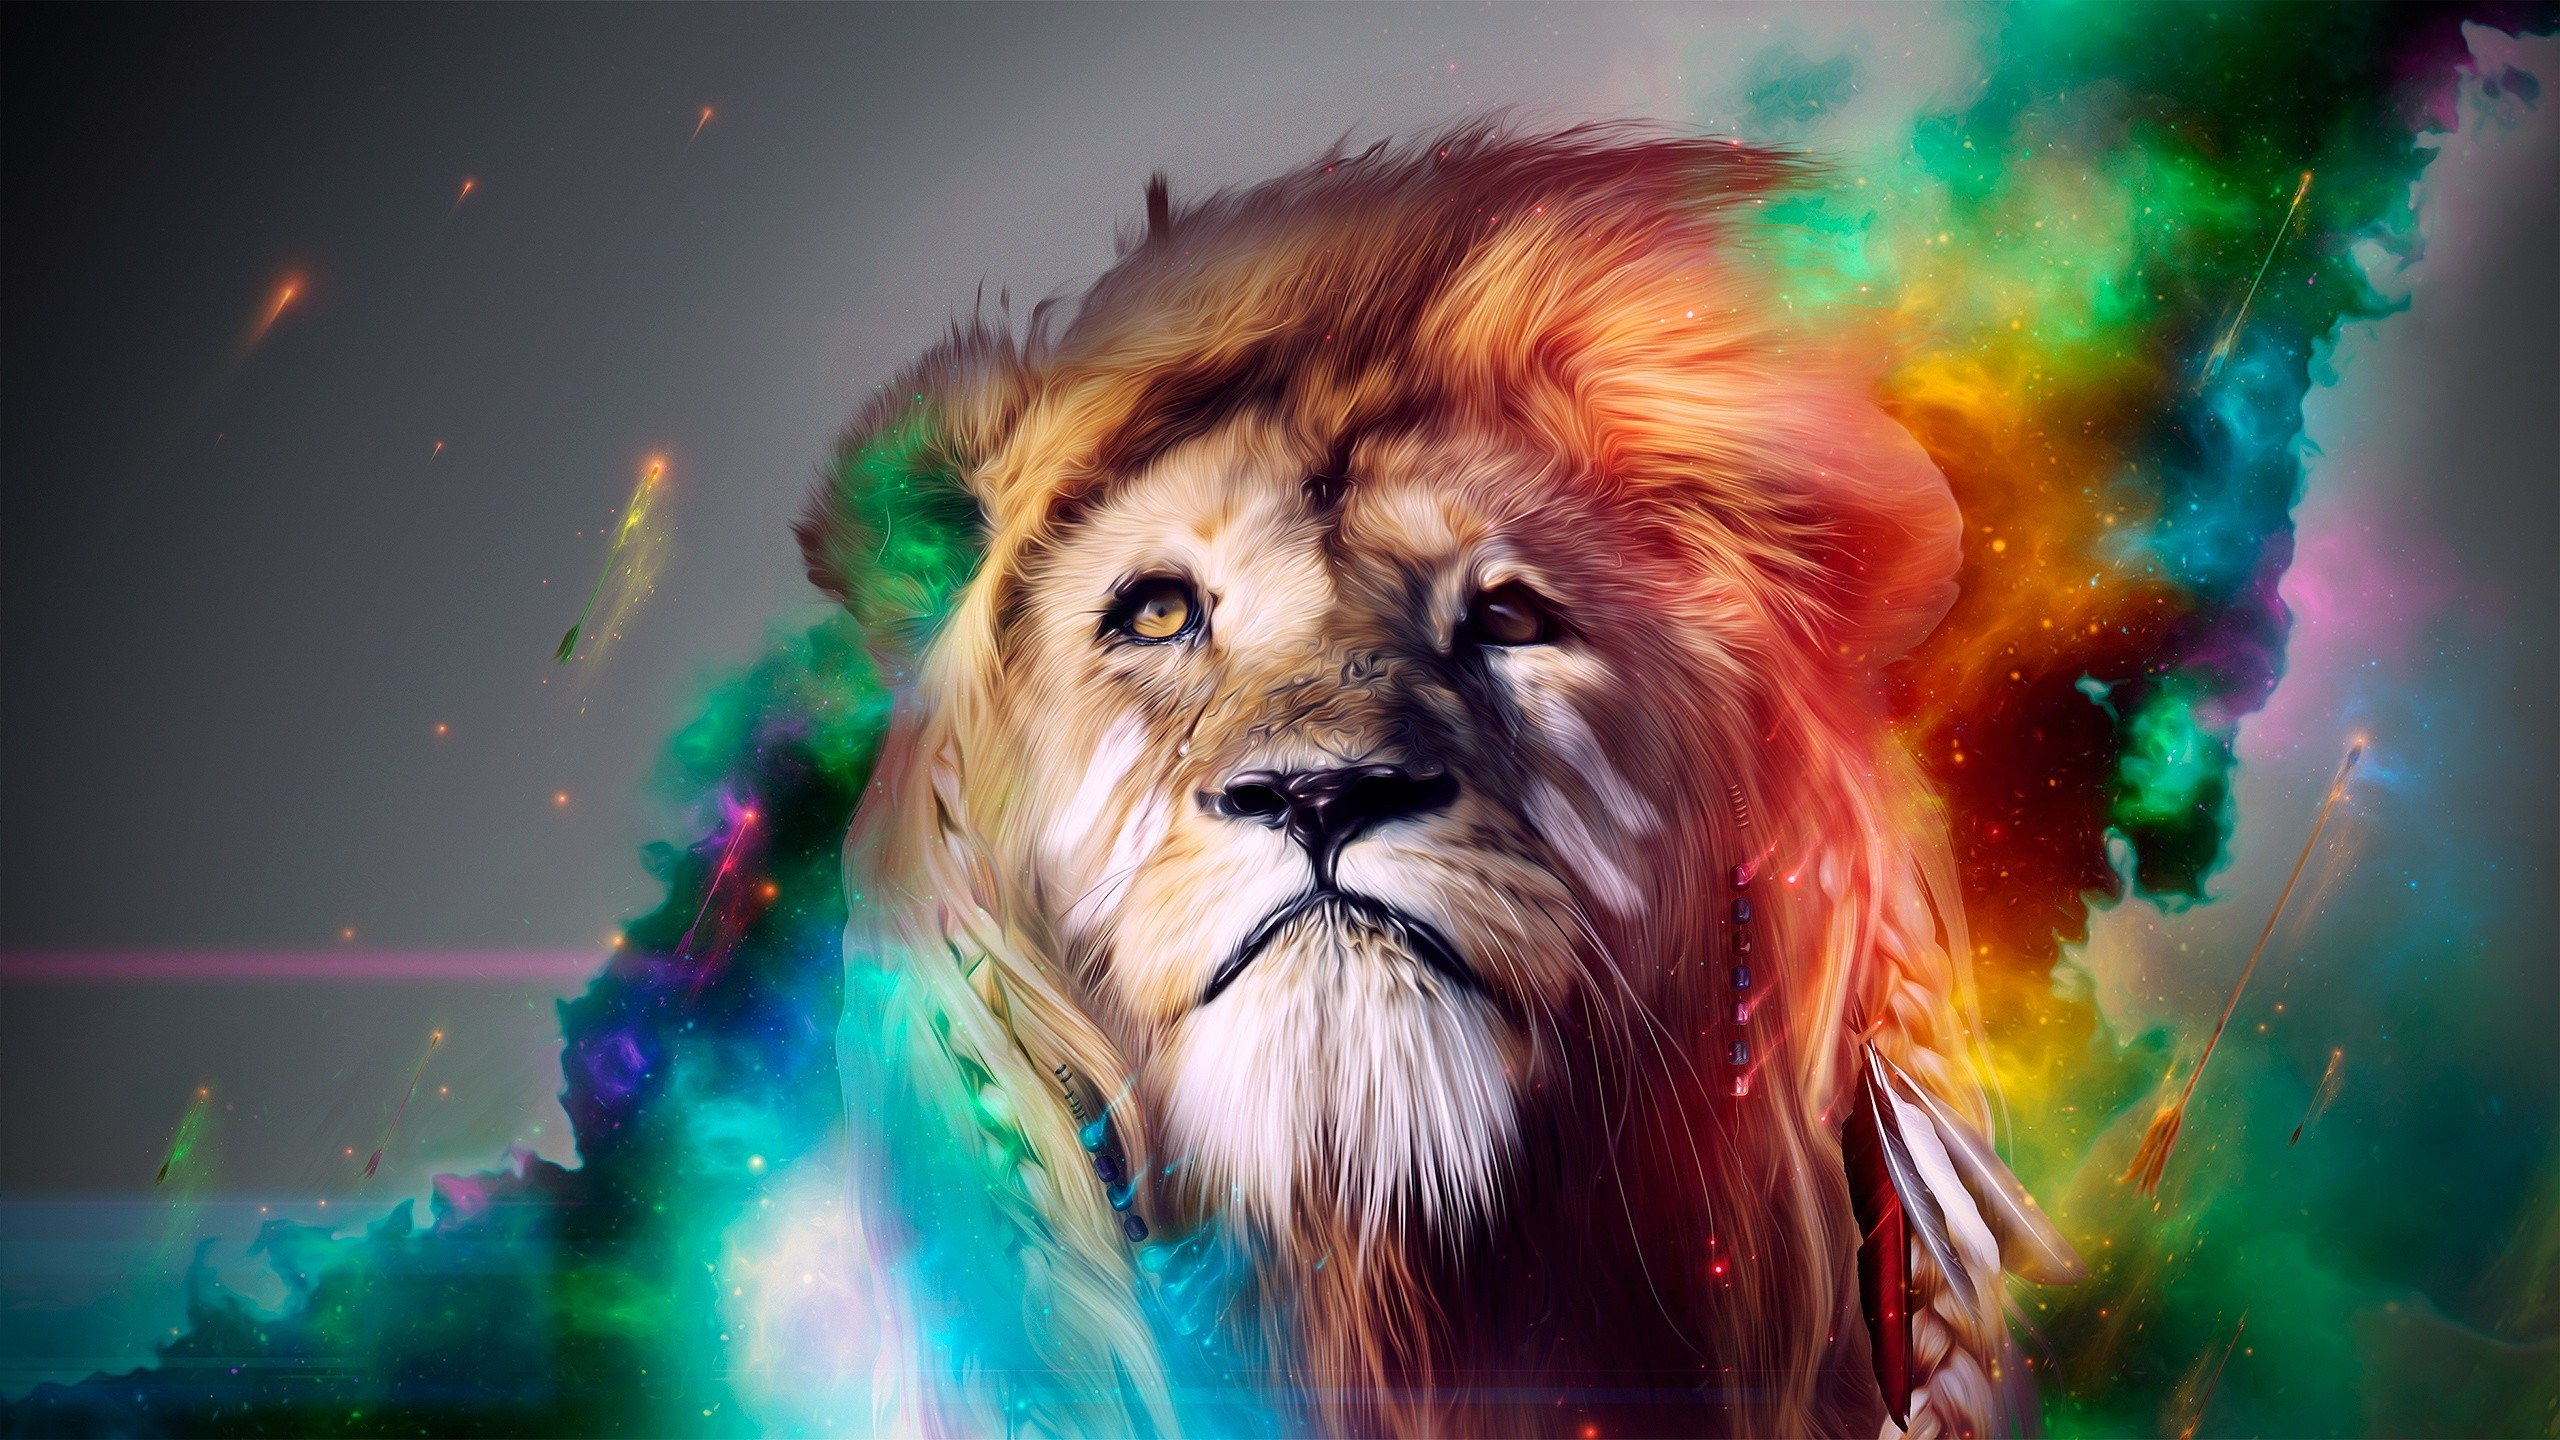 Res: 2560x1440, HD Wallpaper | Background Image ID:320986.  Animal Lion